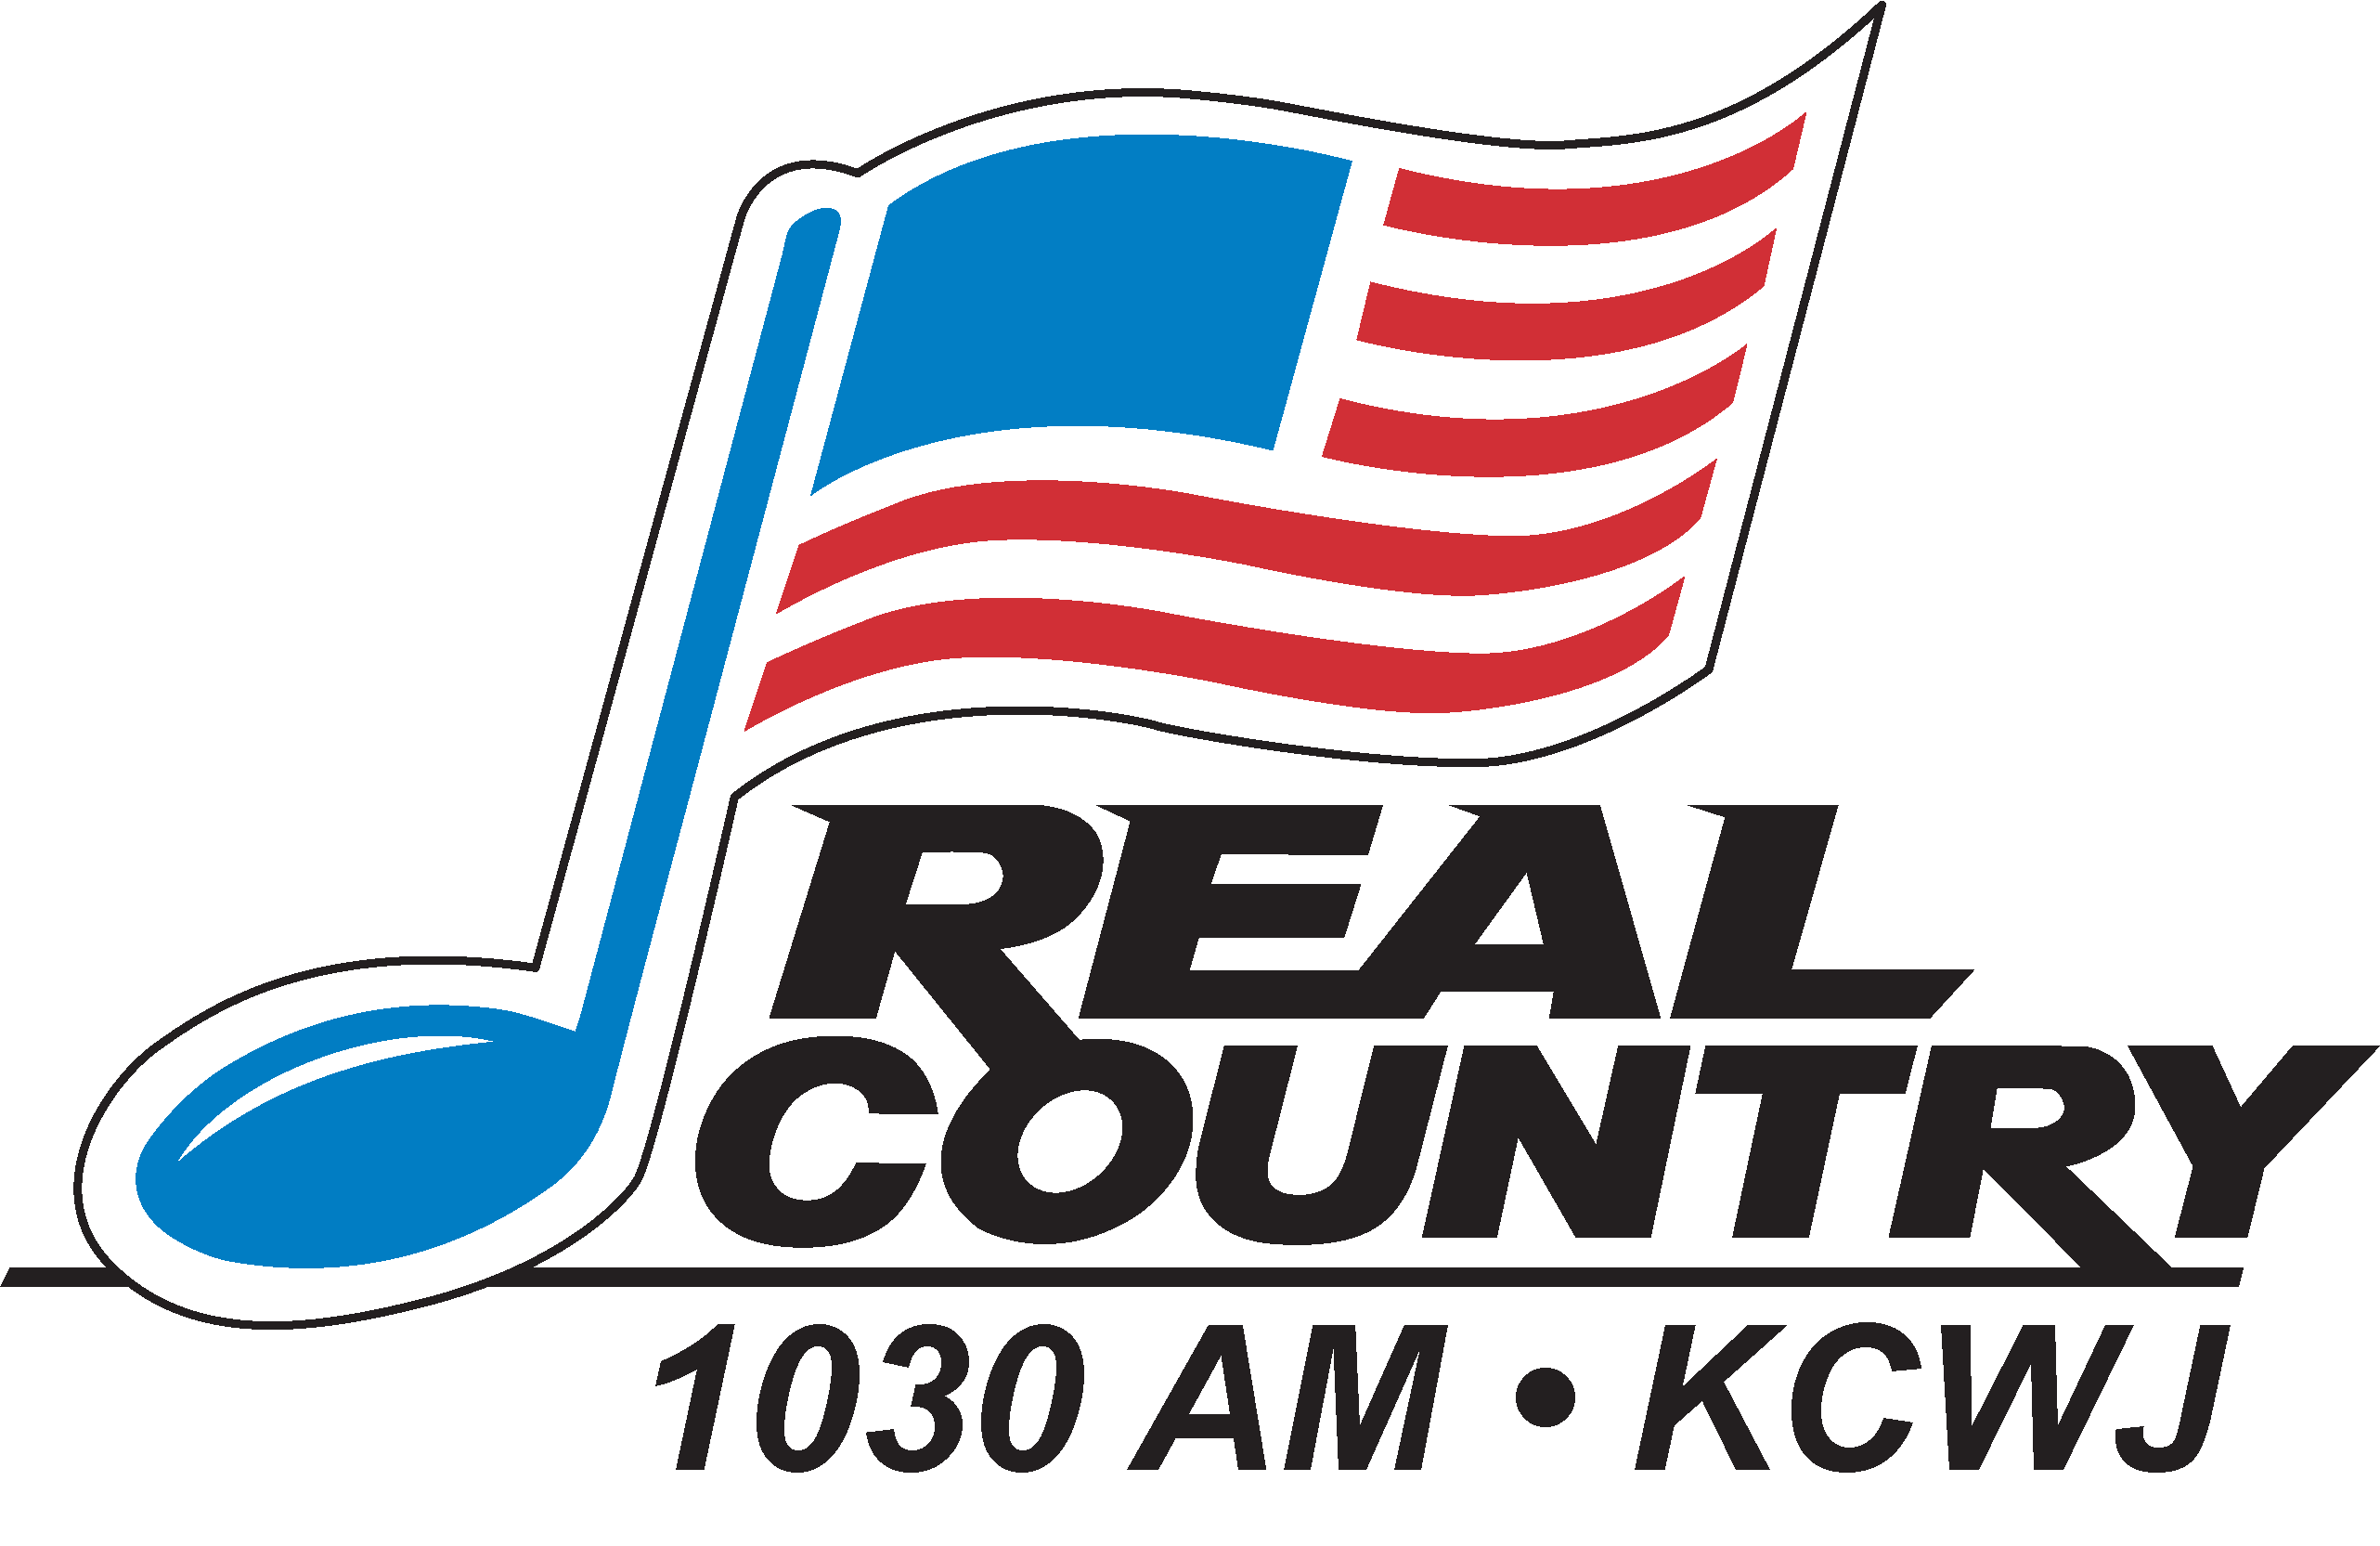 Legend fm clipart picture transparent stock Real Country 1030 AM KCWJ | Country Music & Local Sports Radio ... picture transparent stock